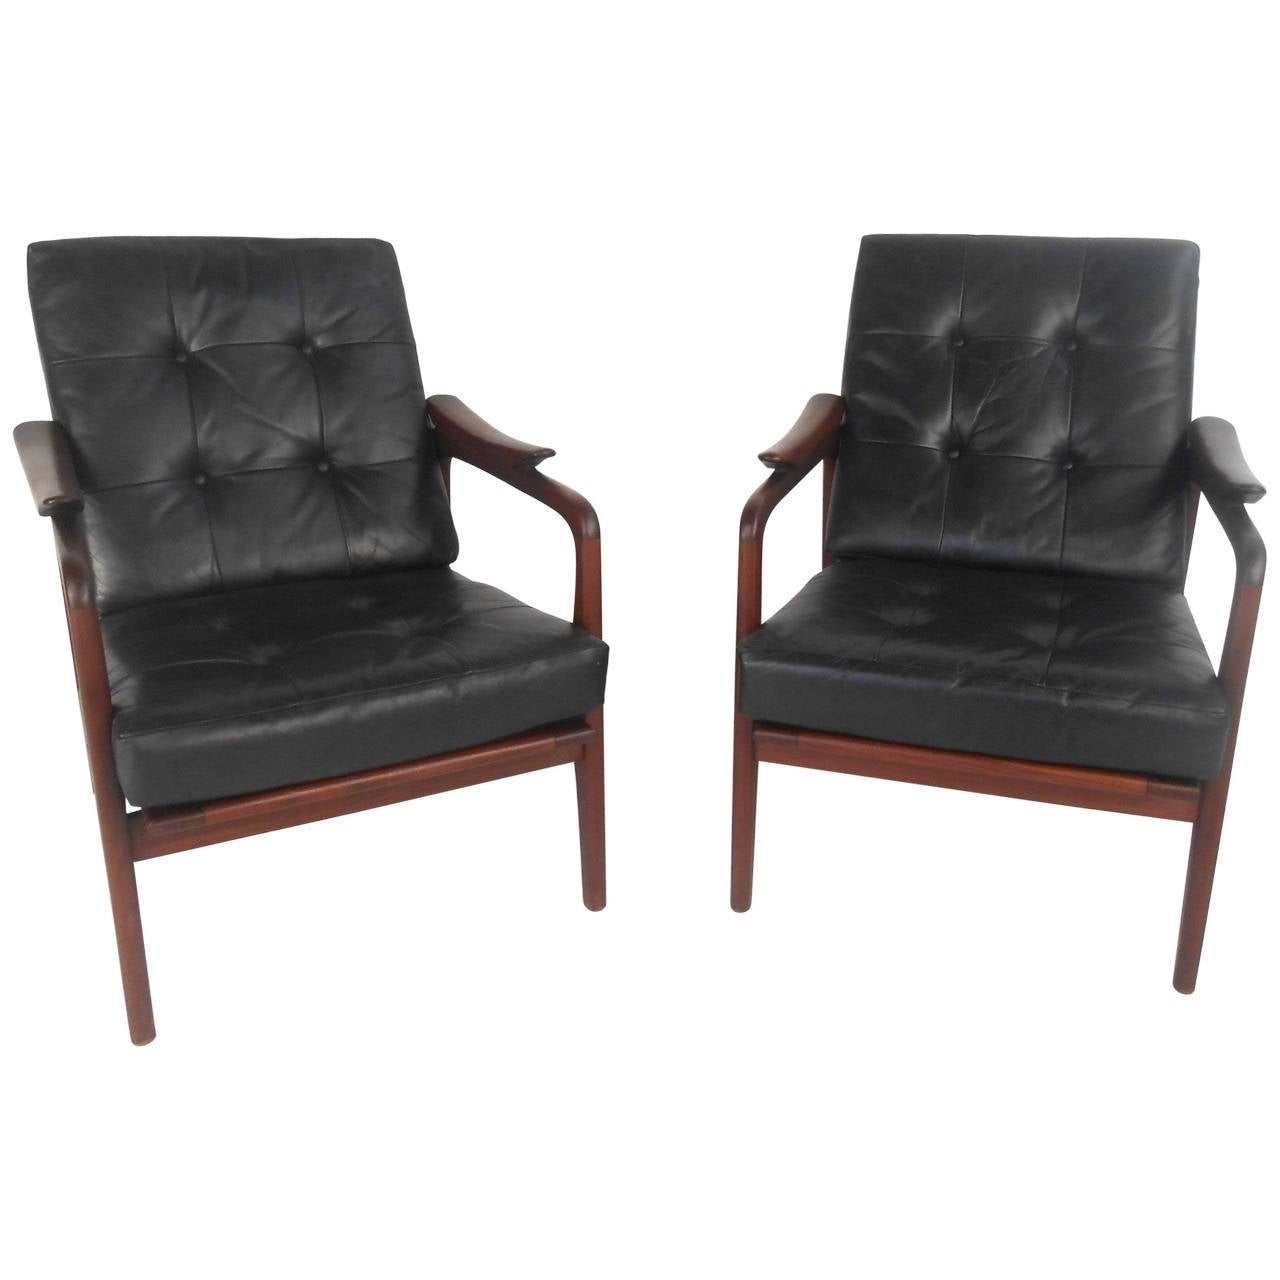 Mid Century Modern Furniture Chair: Pair Beautiful Mid-Century Modern Leather Lounge Chairs At